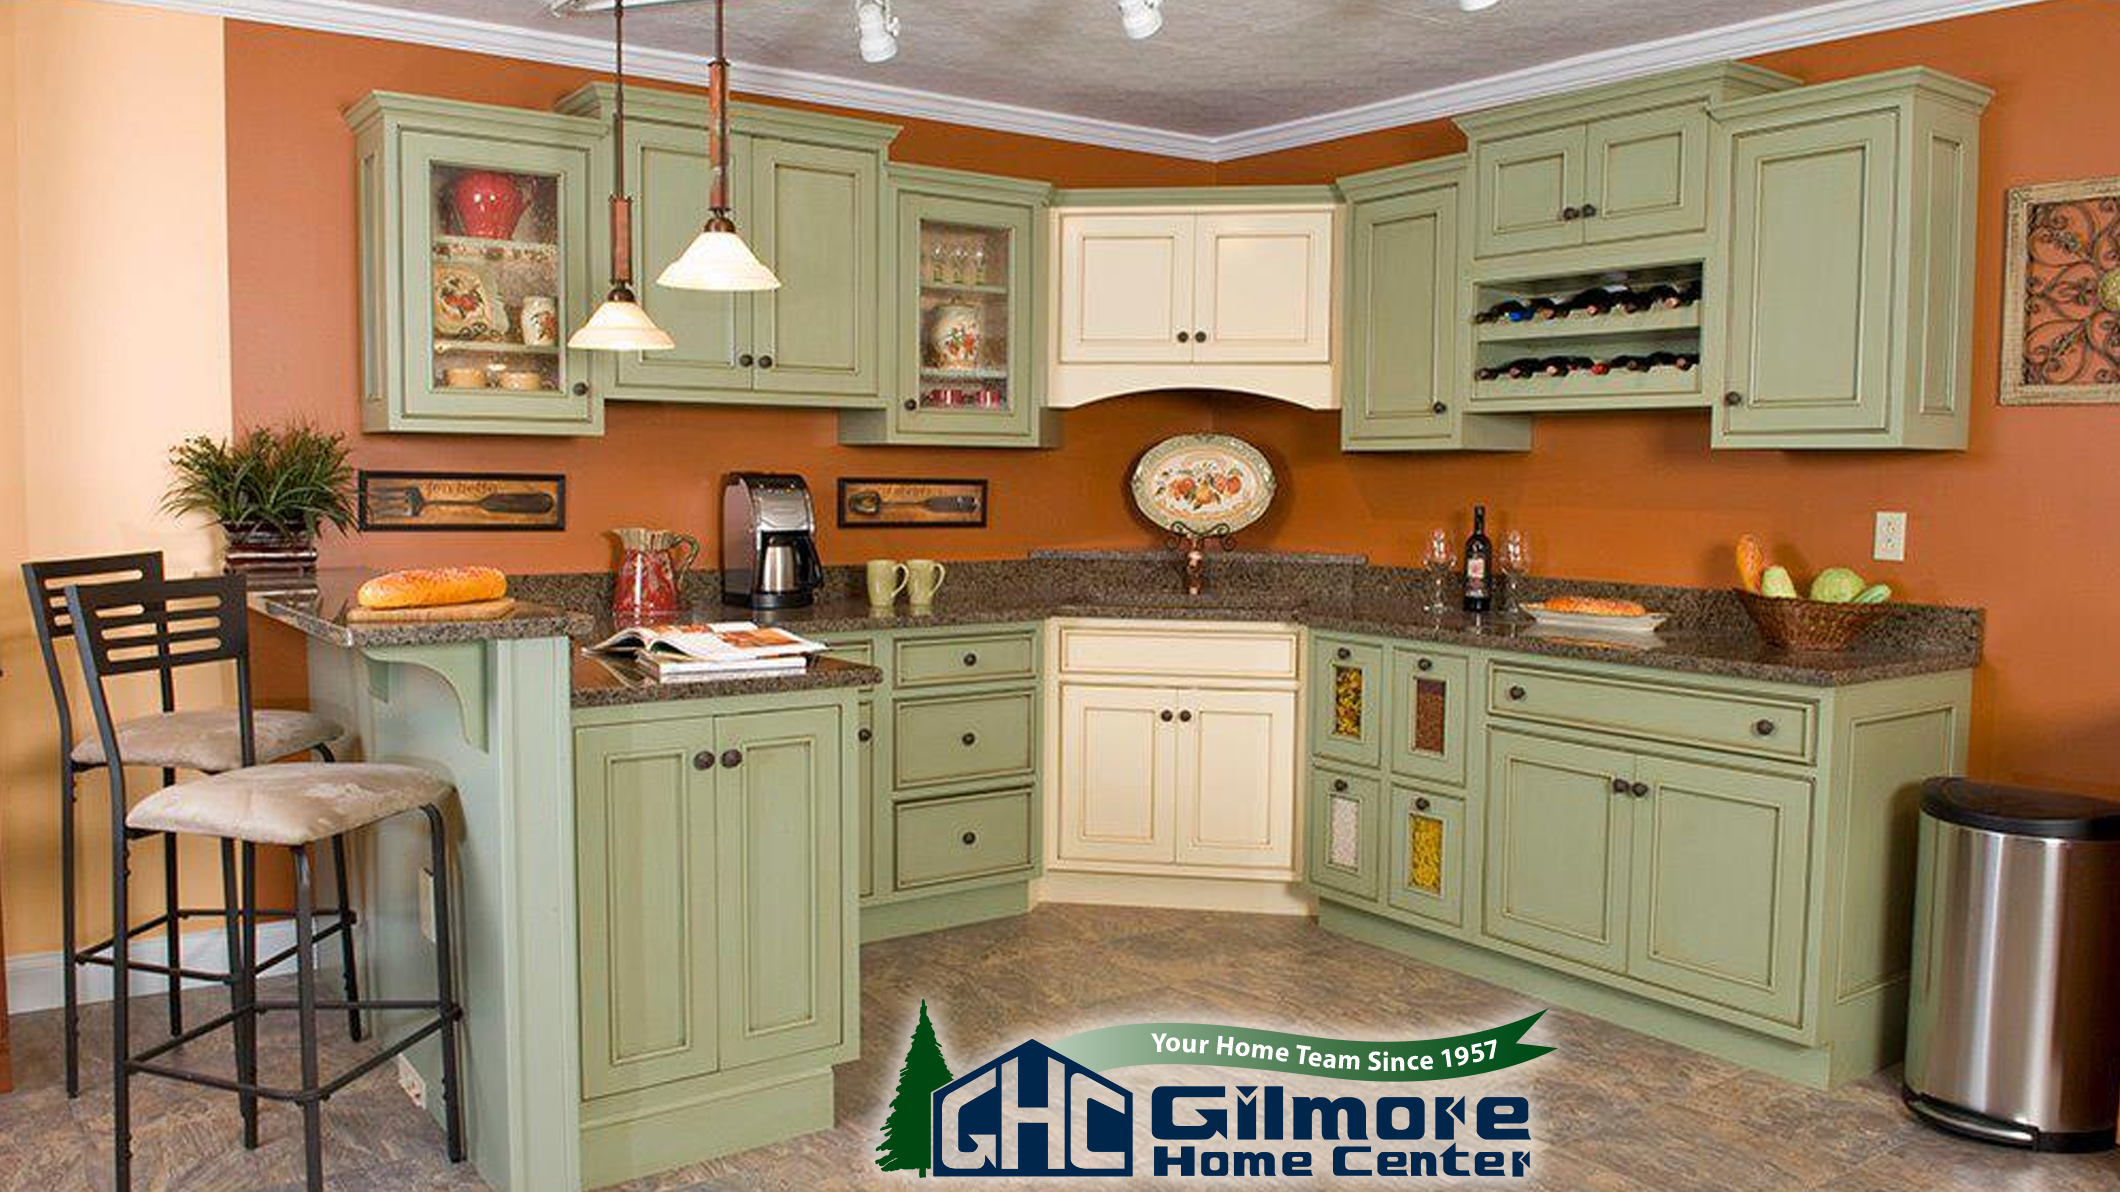 Gilmore Home Center image 0